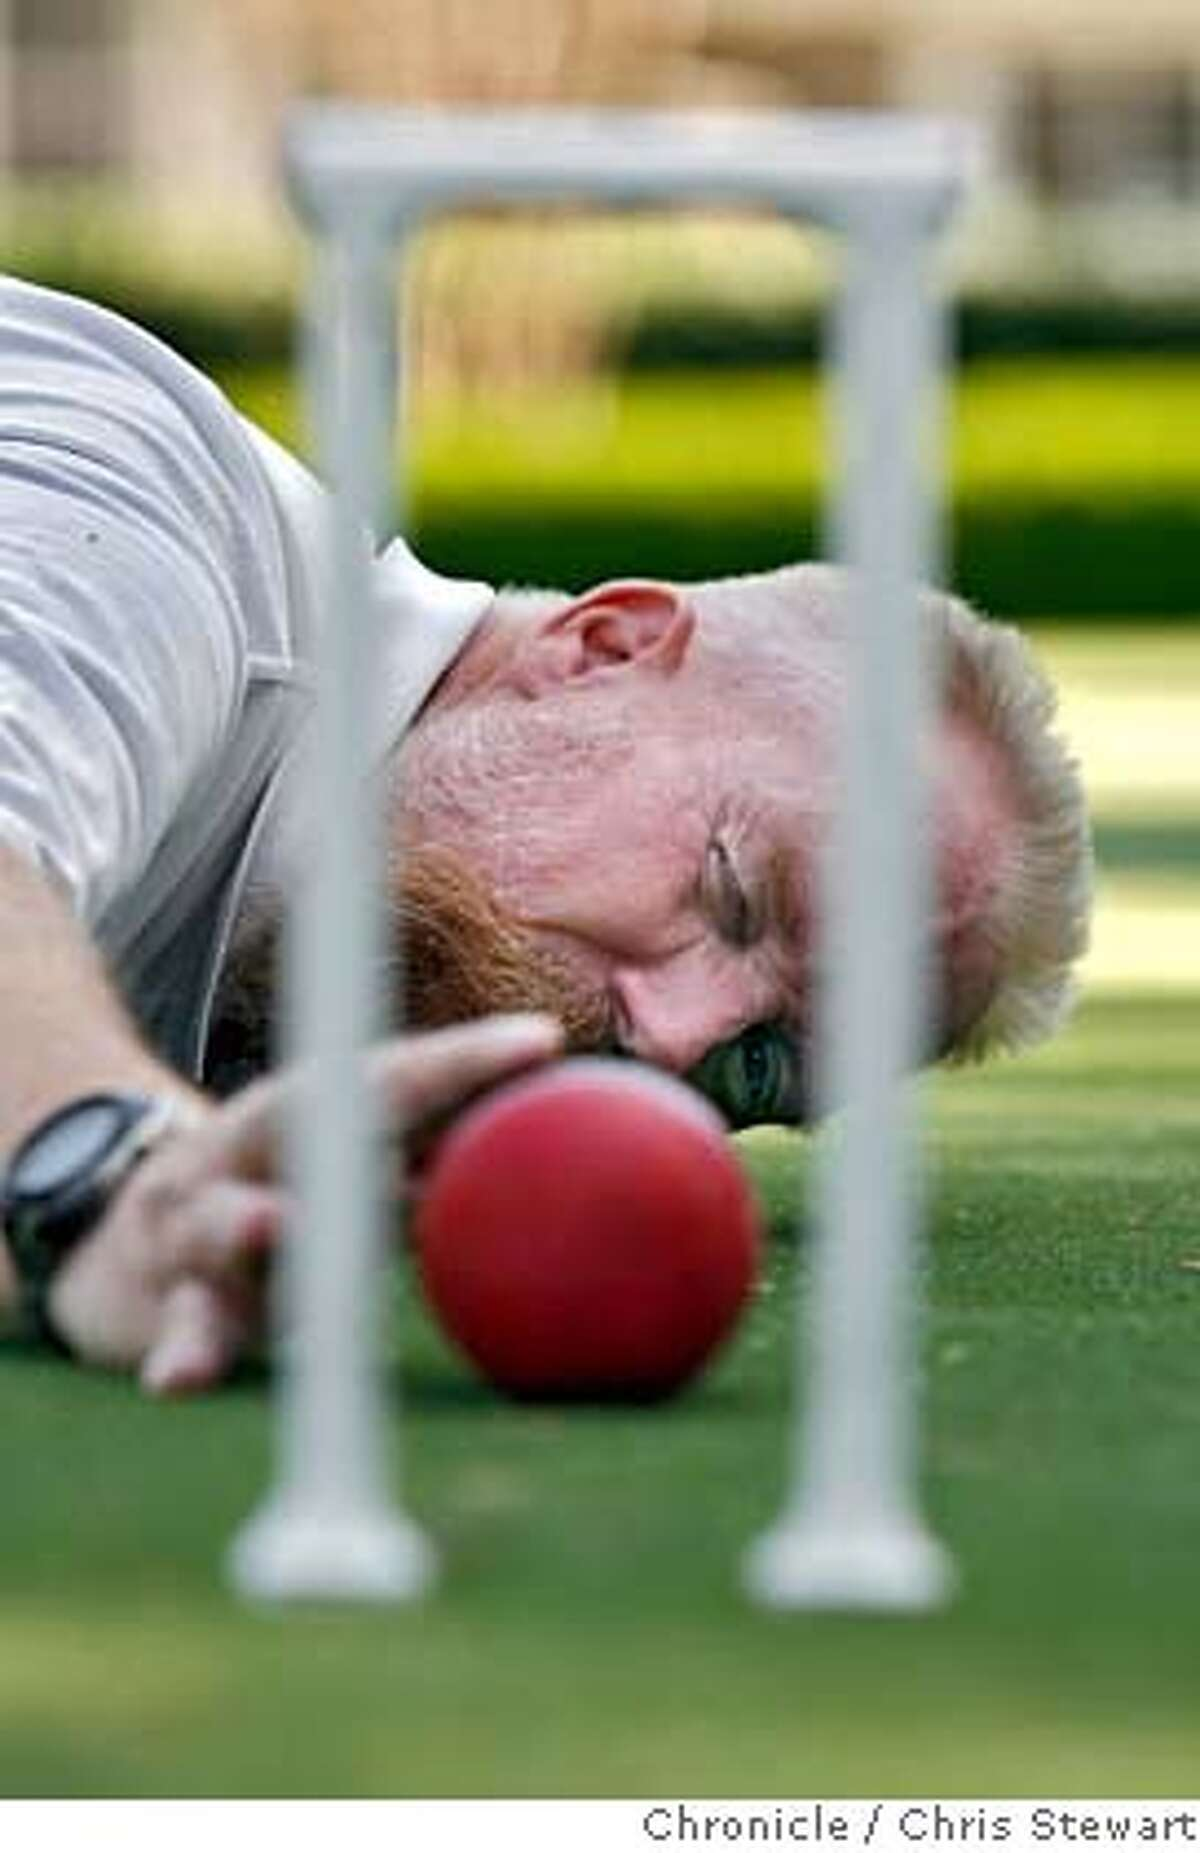 croquet_112_cs.jpg Jerry Stark (cq), 52, lines up a shot on the Meadowood croquet court in St. Helena. Stark is ranked number two in the nation as a competitive croquet player and the croquet director at Meadowood in St. Helena. Photographed March 21, 2007. Chris Stewart / The Chronicle Jerry Stark, croquet, Meadowood MANDATORY CREDIT FOR PHOTOG AND SF CHRONICLE/NO SALES-MAGS OUT